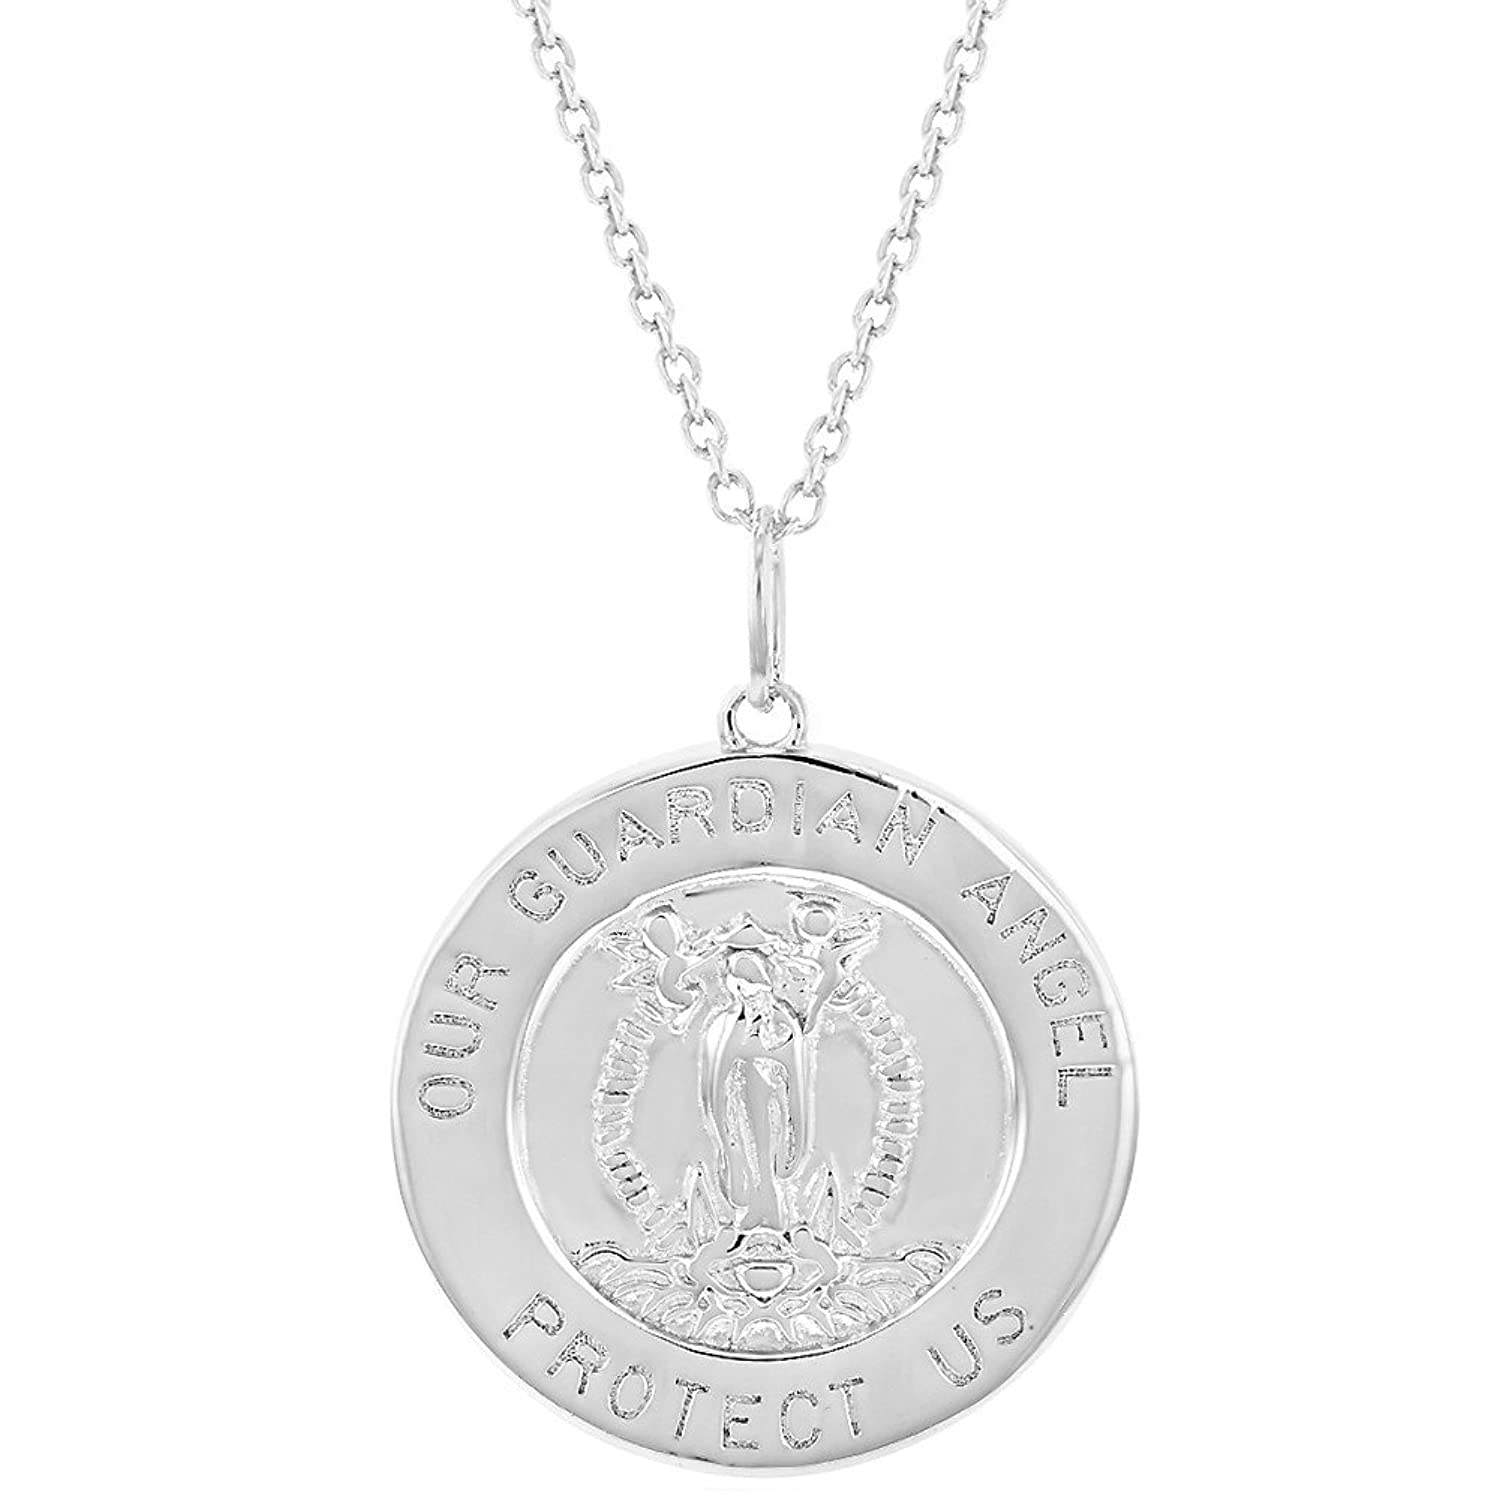 925 Sterling Silver Guardian Angel Round Medal Religious Pendant Necklace 18""